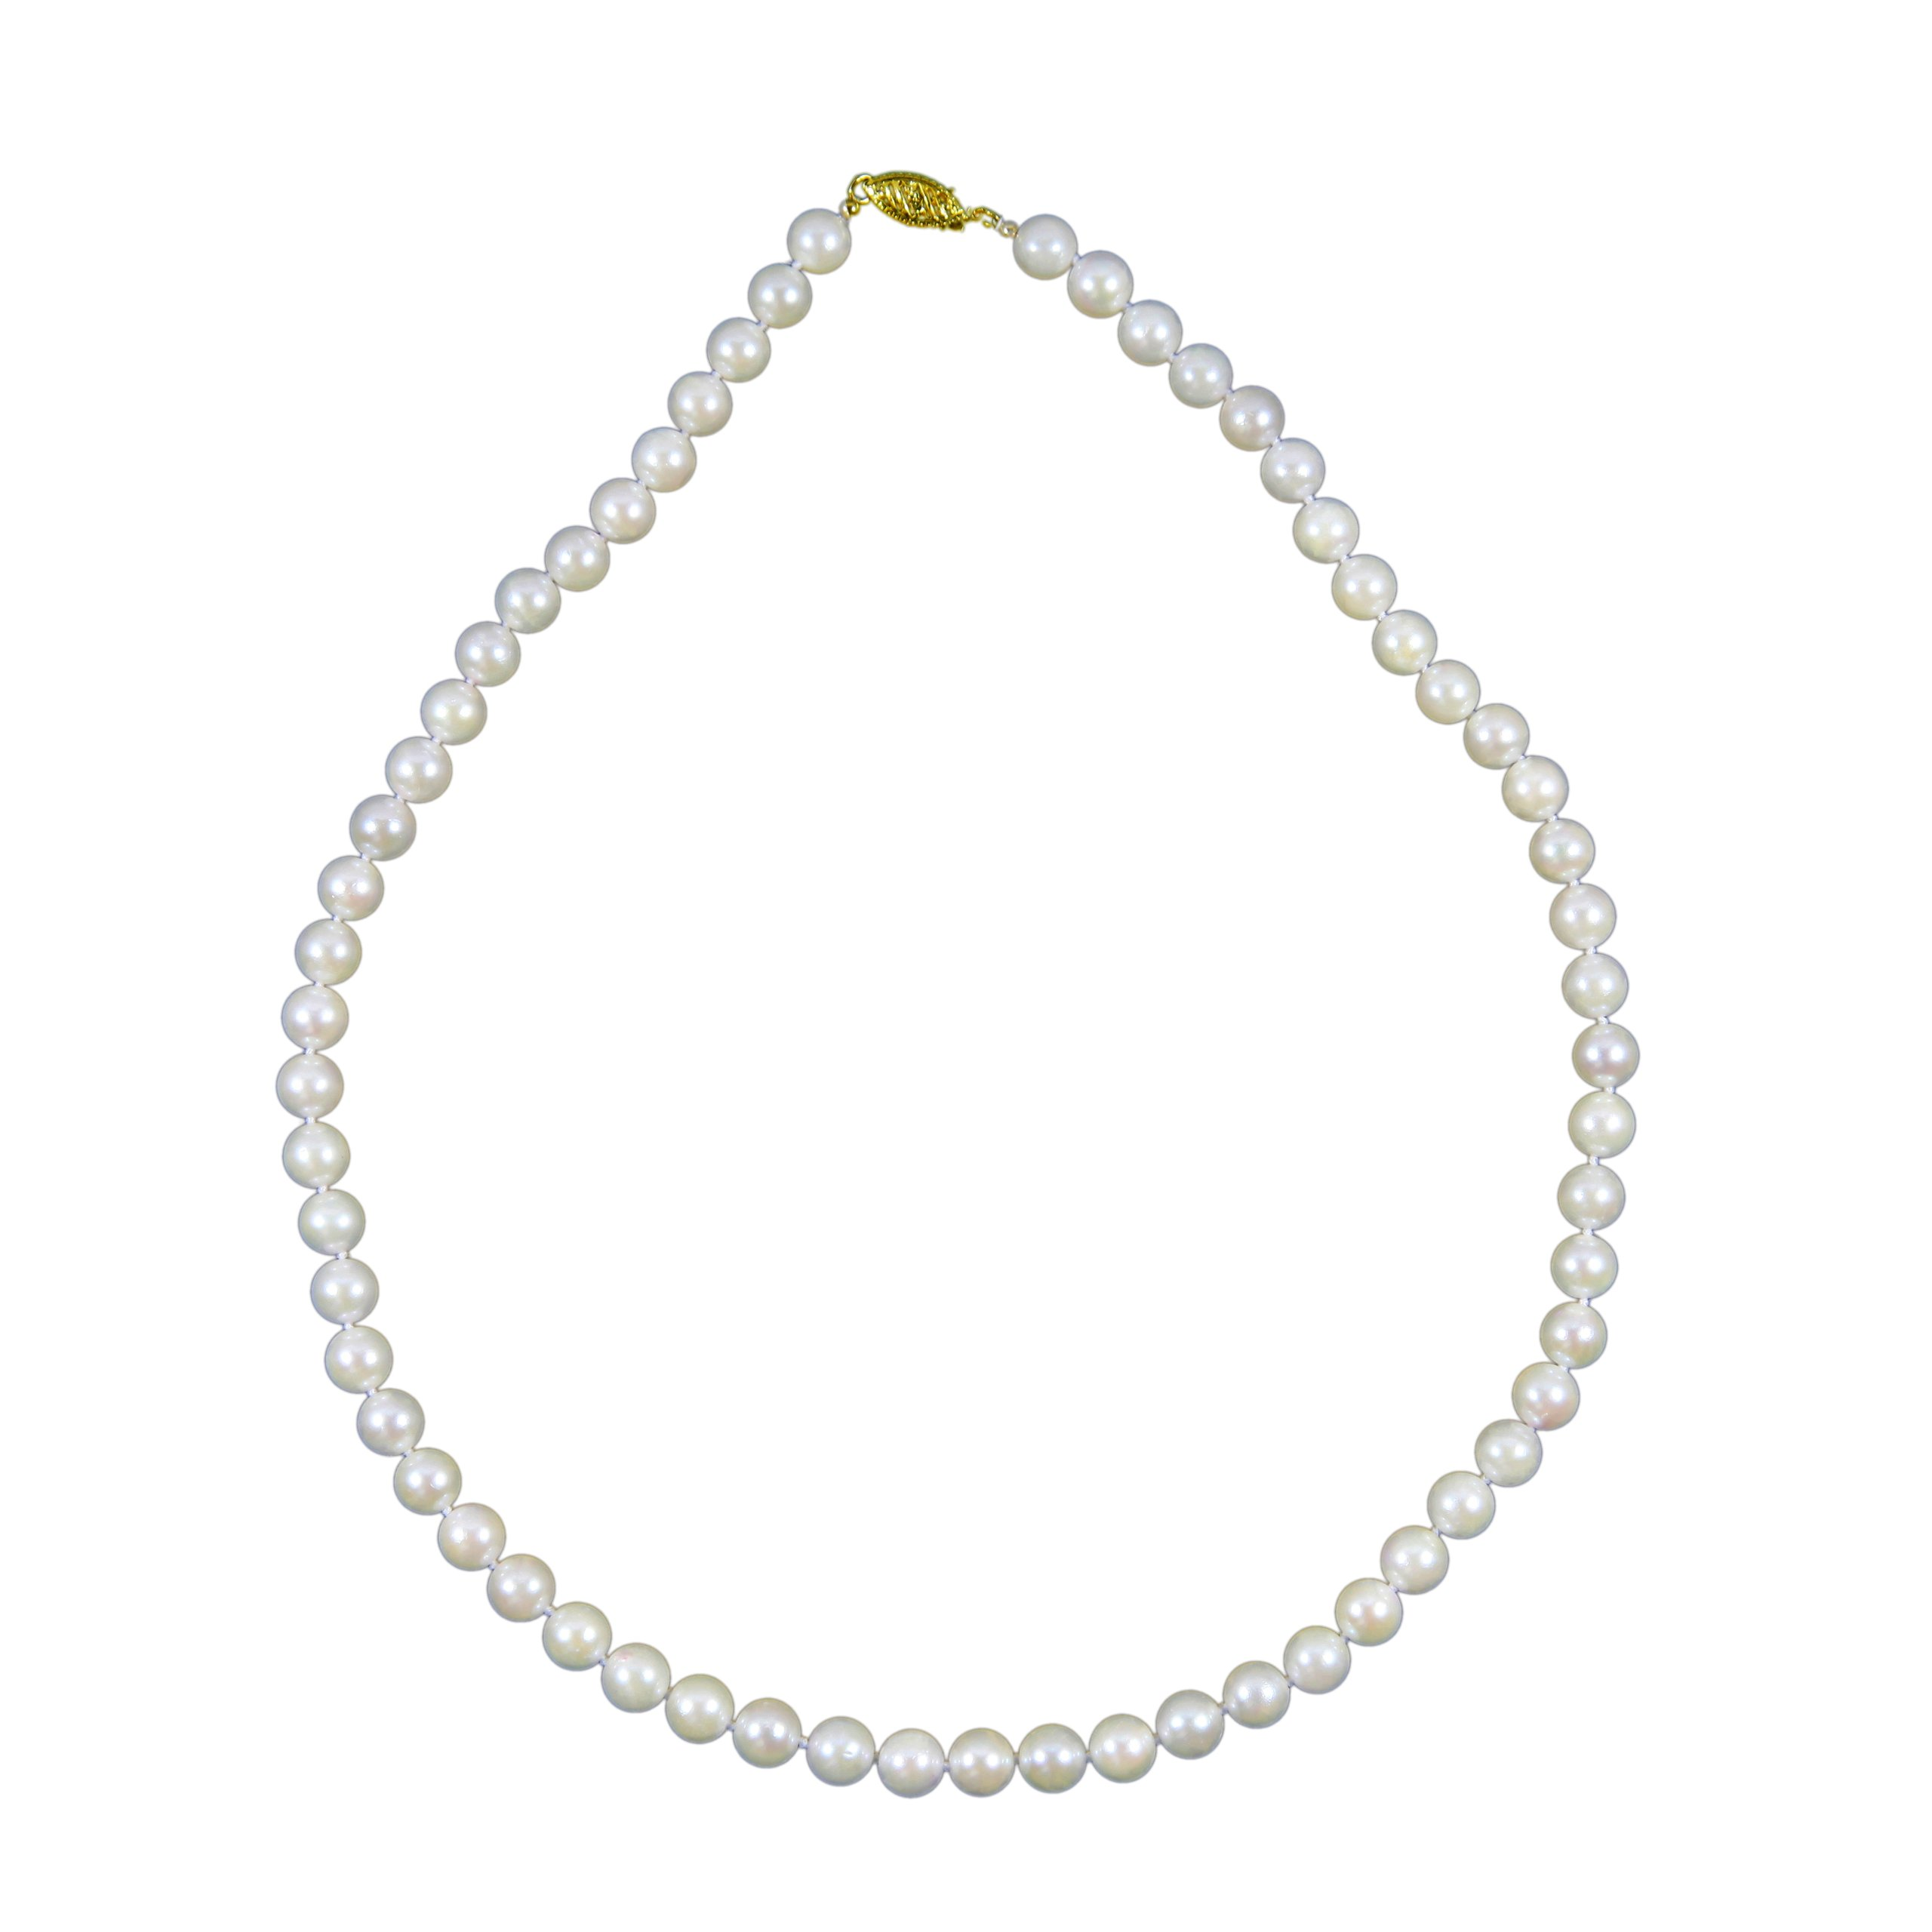 Bridal Wedding 14k Yellow Gold 6.5-7.0mm White Akoya Cultured Pearl High Luster Necklace 18'' Length